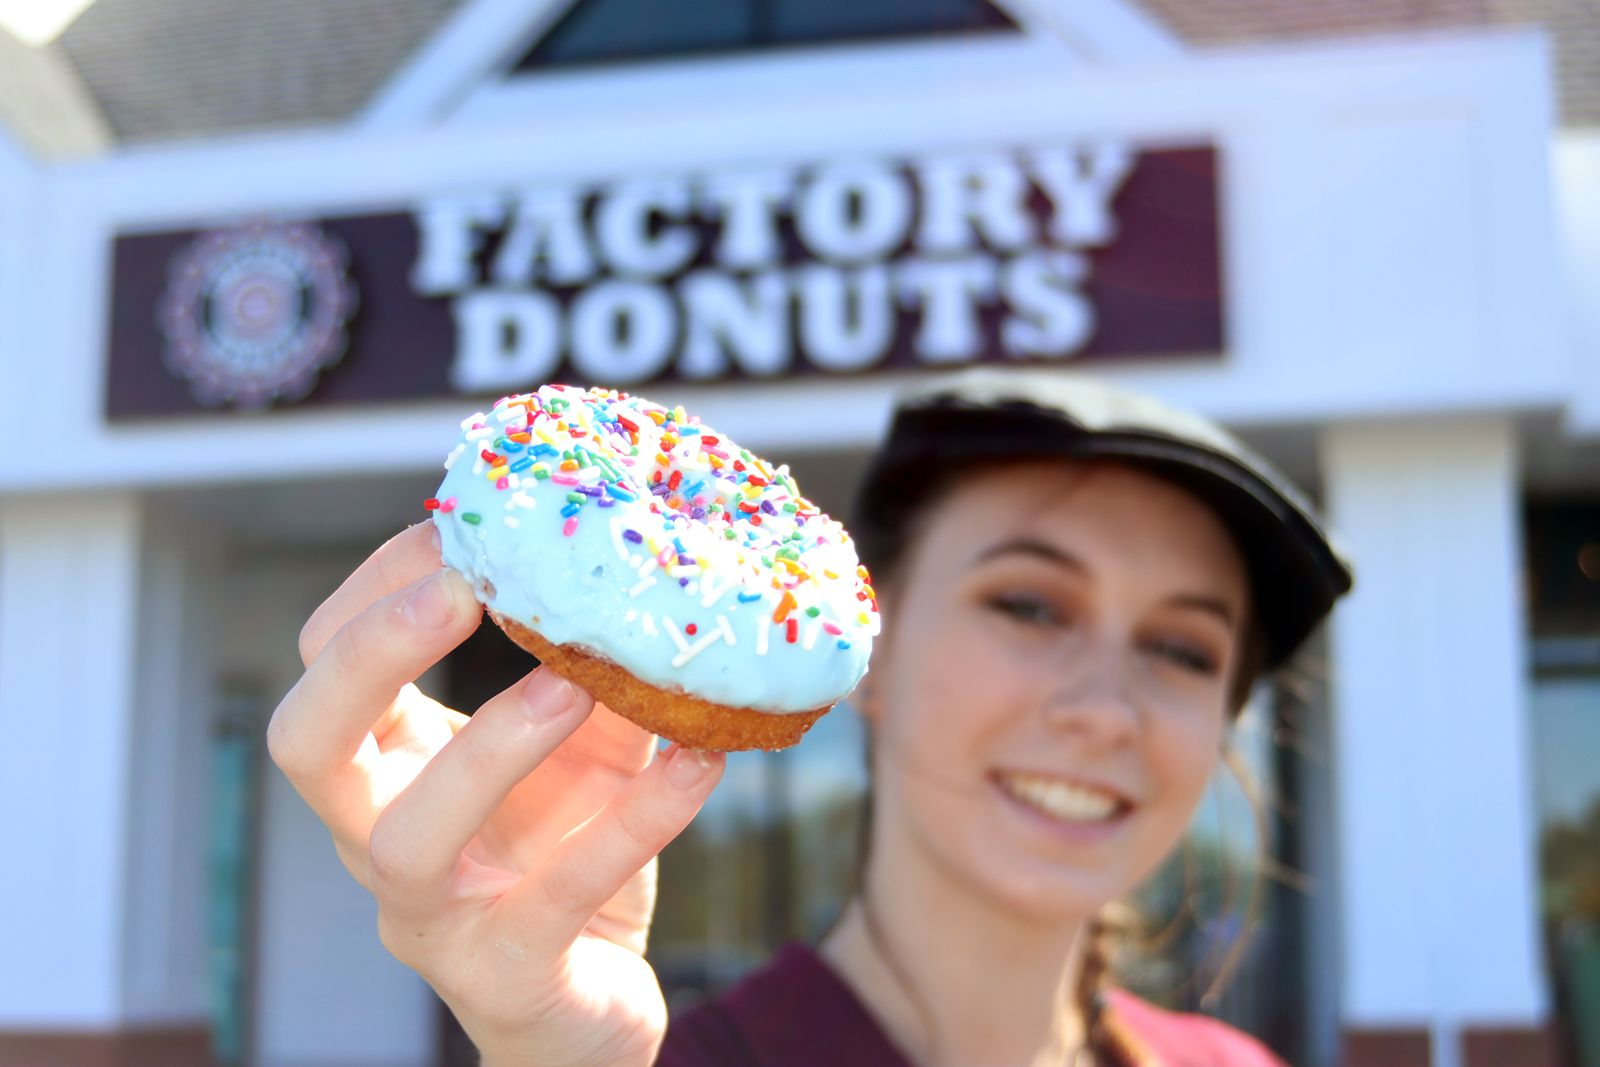 Factory Donuts Celebrates Grand Opening Newtown, PA